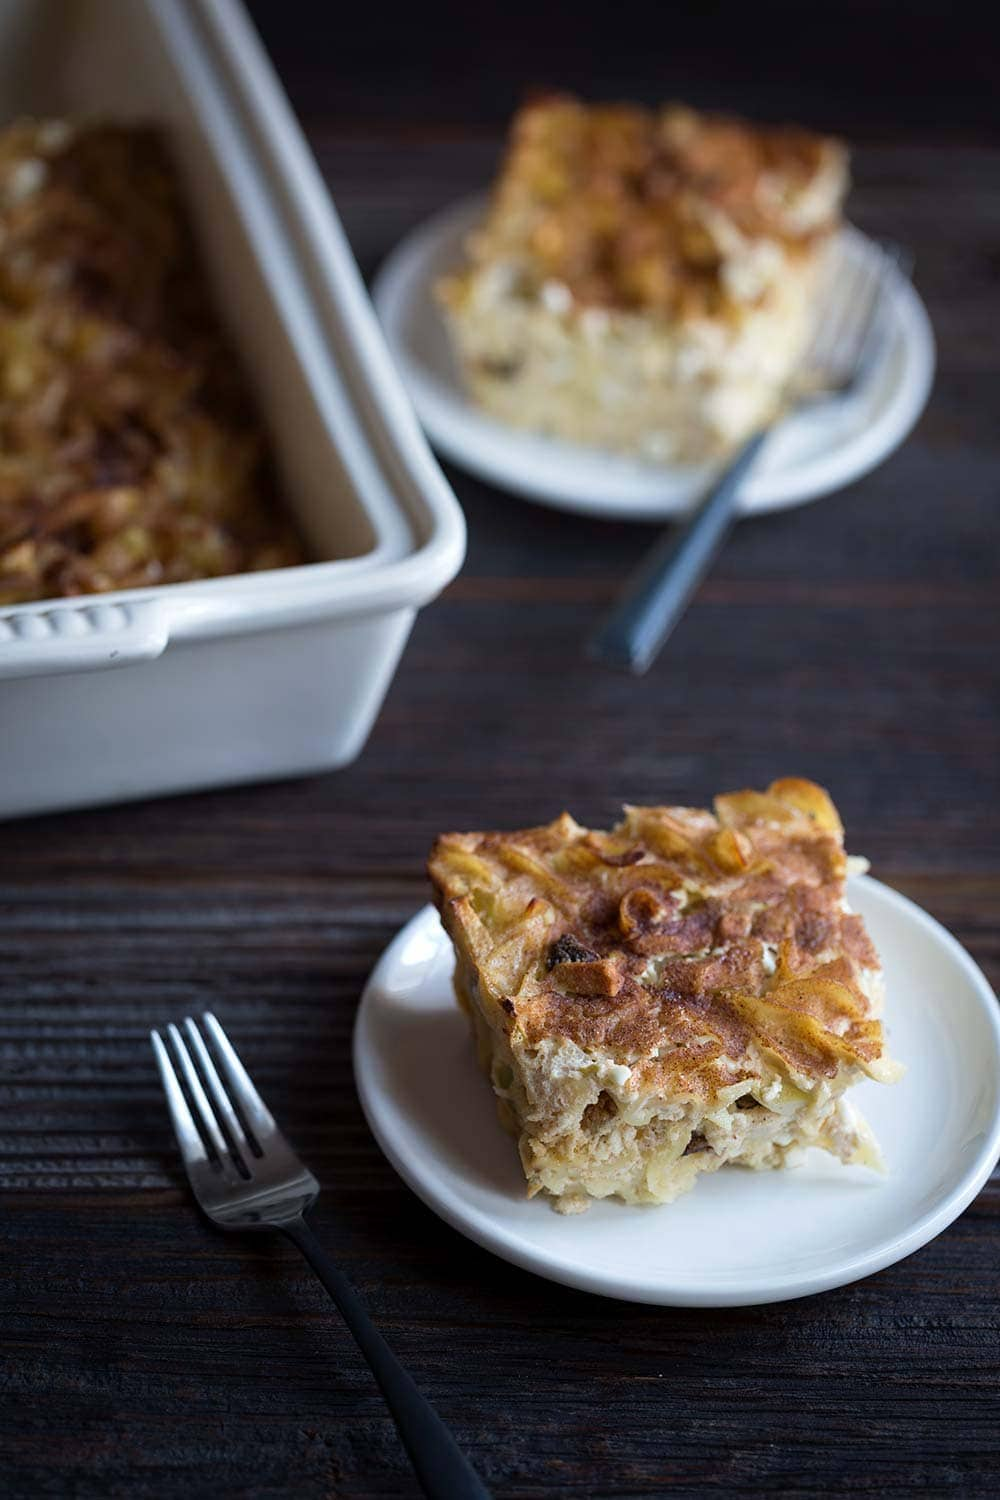 APPLE NOODLE KUGEL HANUKKAH RECIPE SAVORY SIMPLE